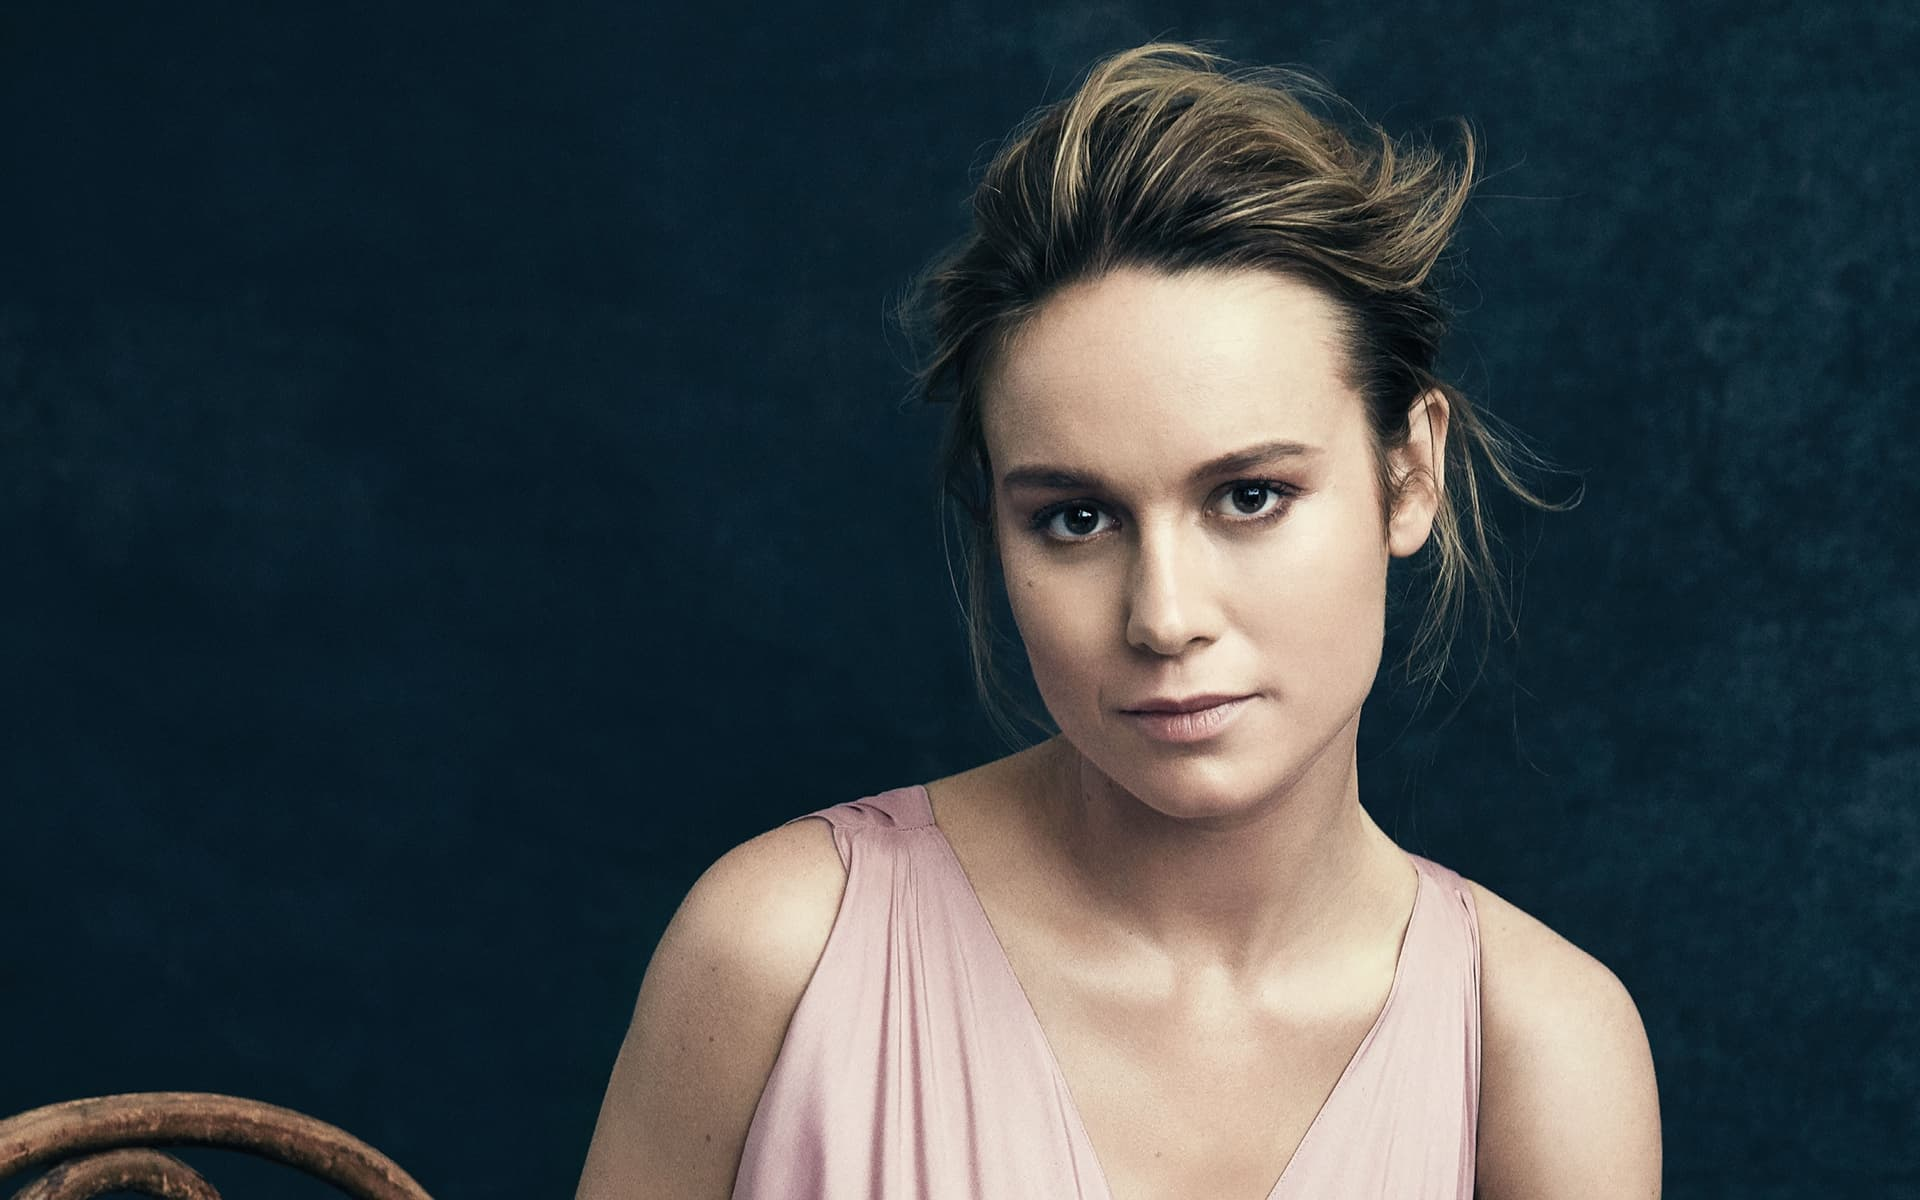 3 Girls Wallpaper 33 Brie Larson Wallpapers High Quality Resolution Download